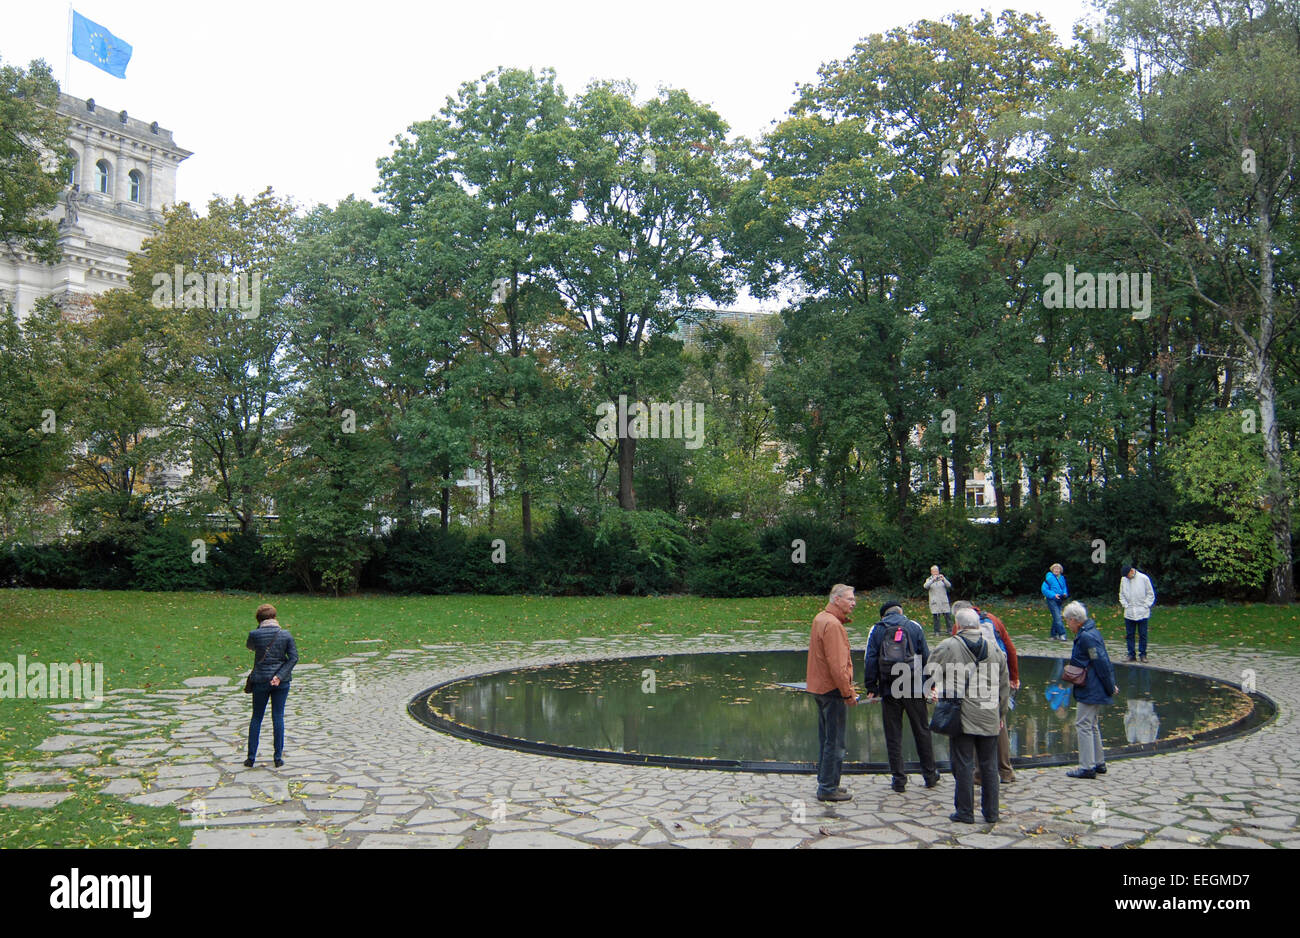 Memorial dedicated to the Roma and Sinti, victims of the Nazi genocide. Stock Photo